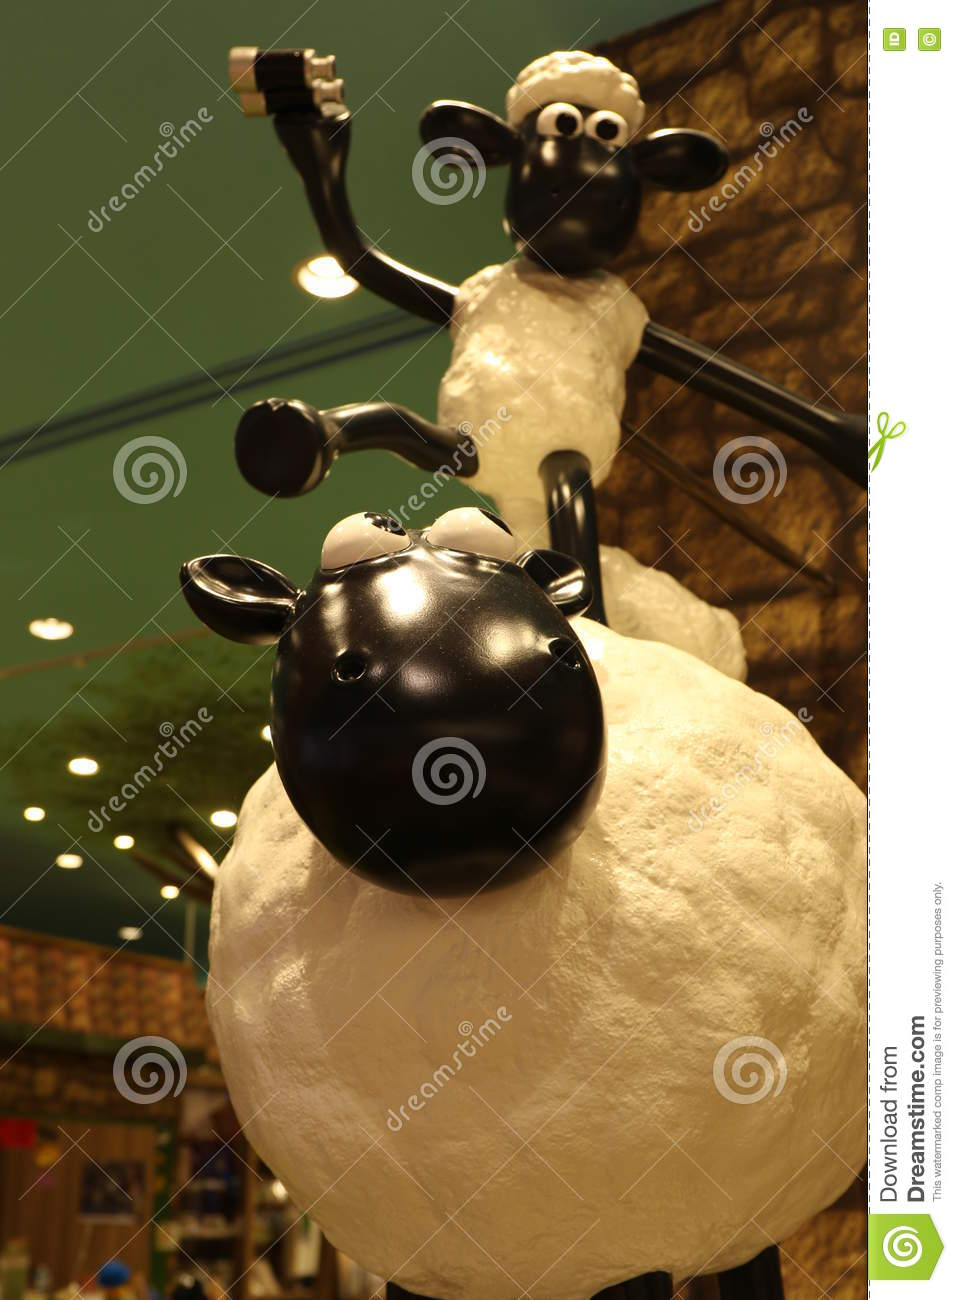 Aardmans Shaun The Sheep Characters On DisplayaEUREURat Expocity